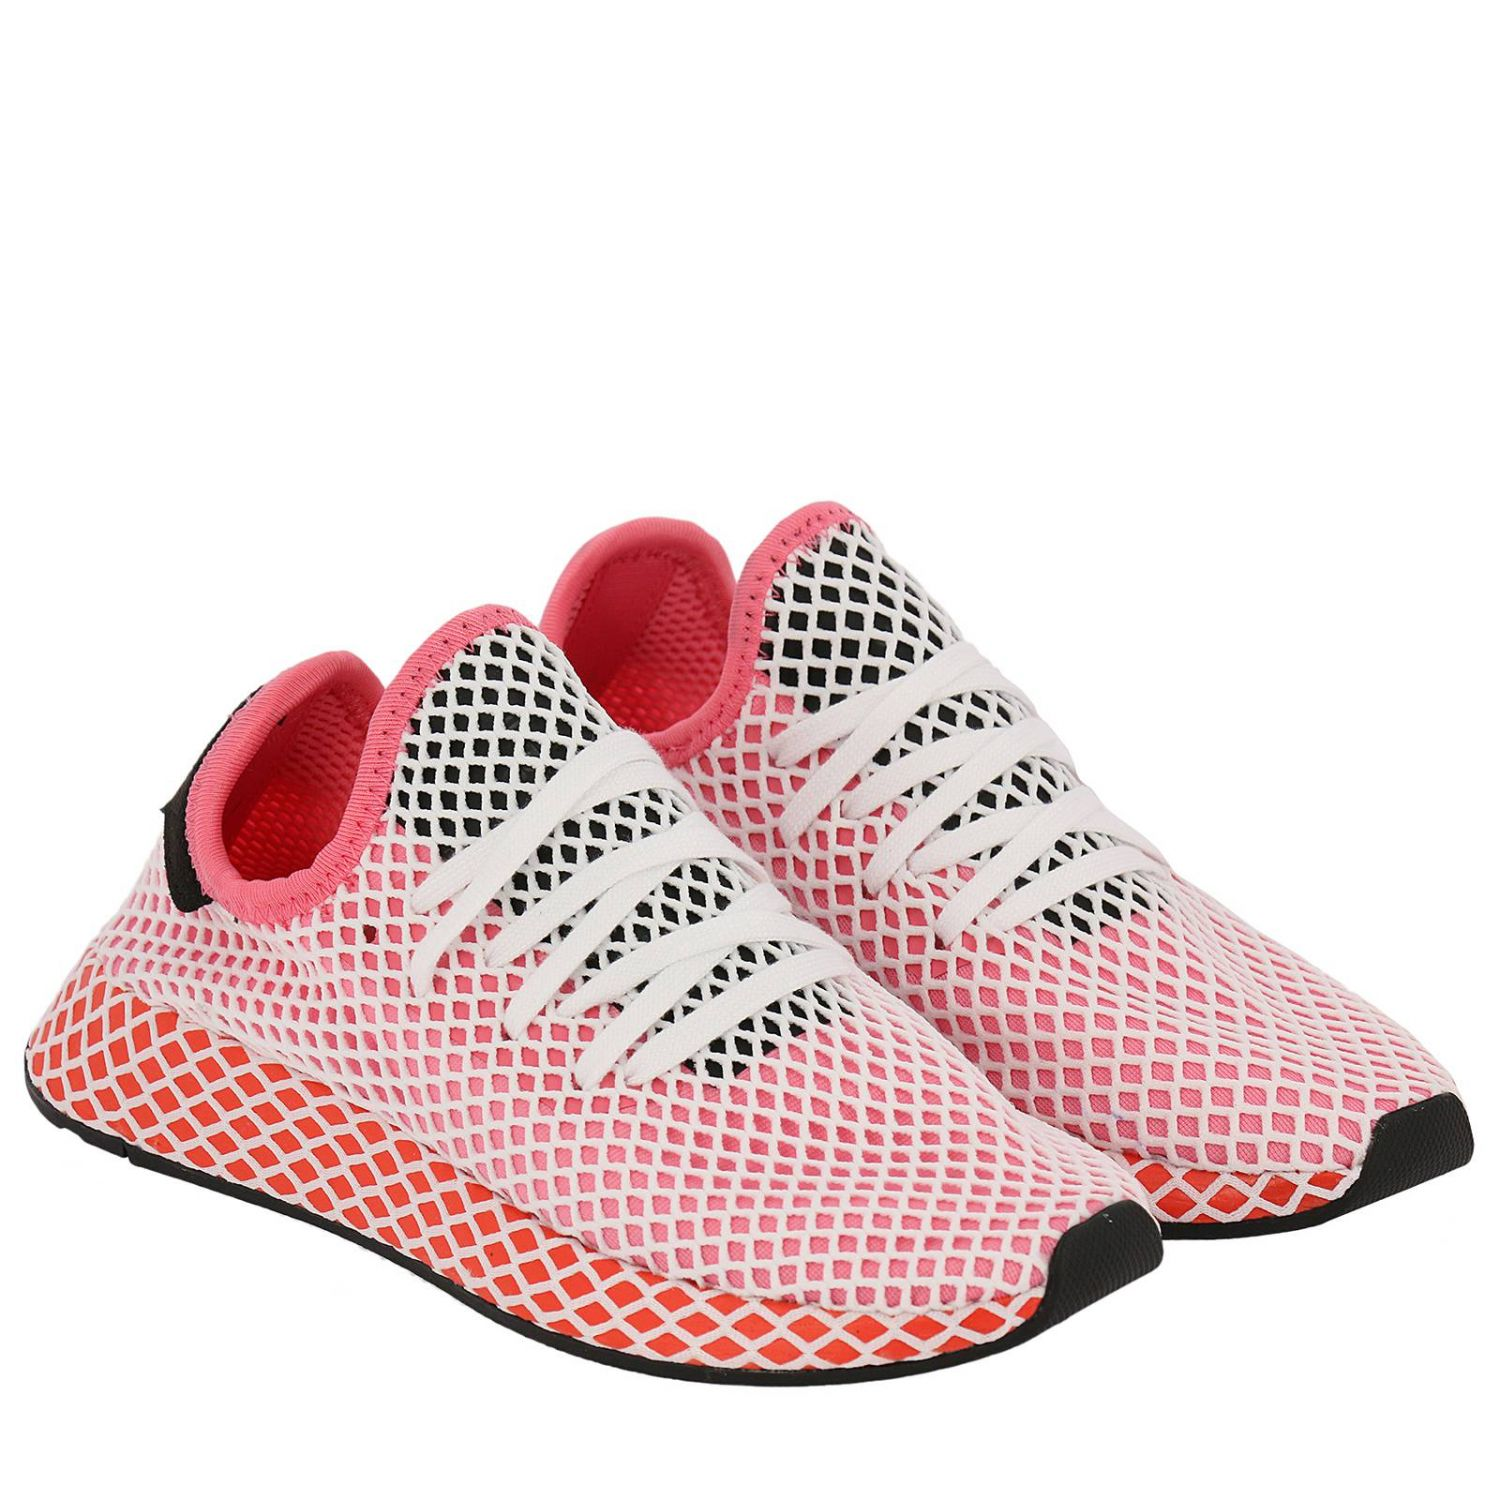 Baskets Deerupt Runner W Originals en knite et mesh stretch effet filet